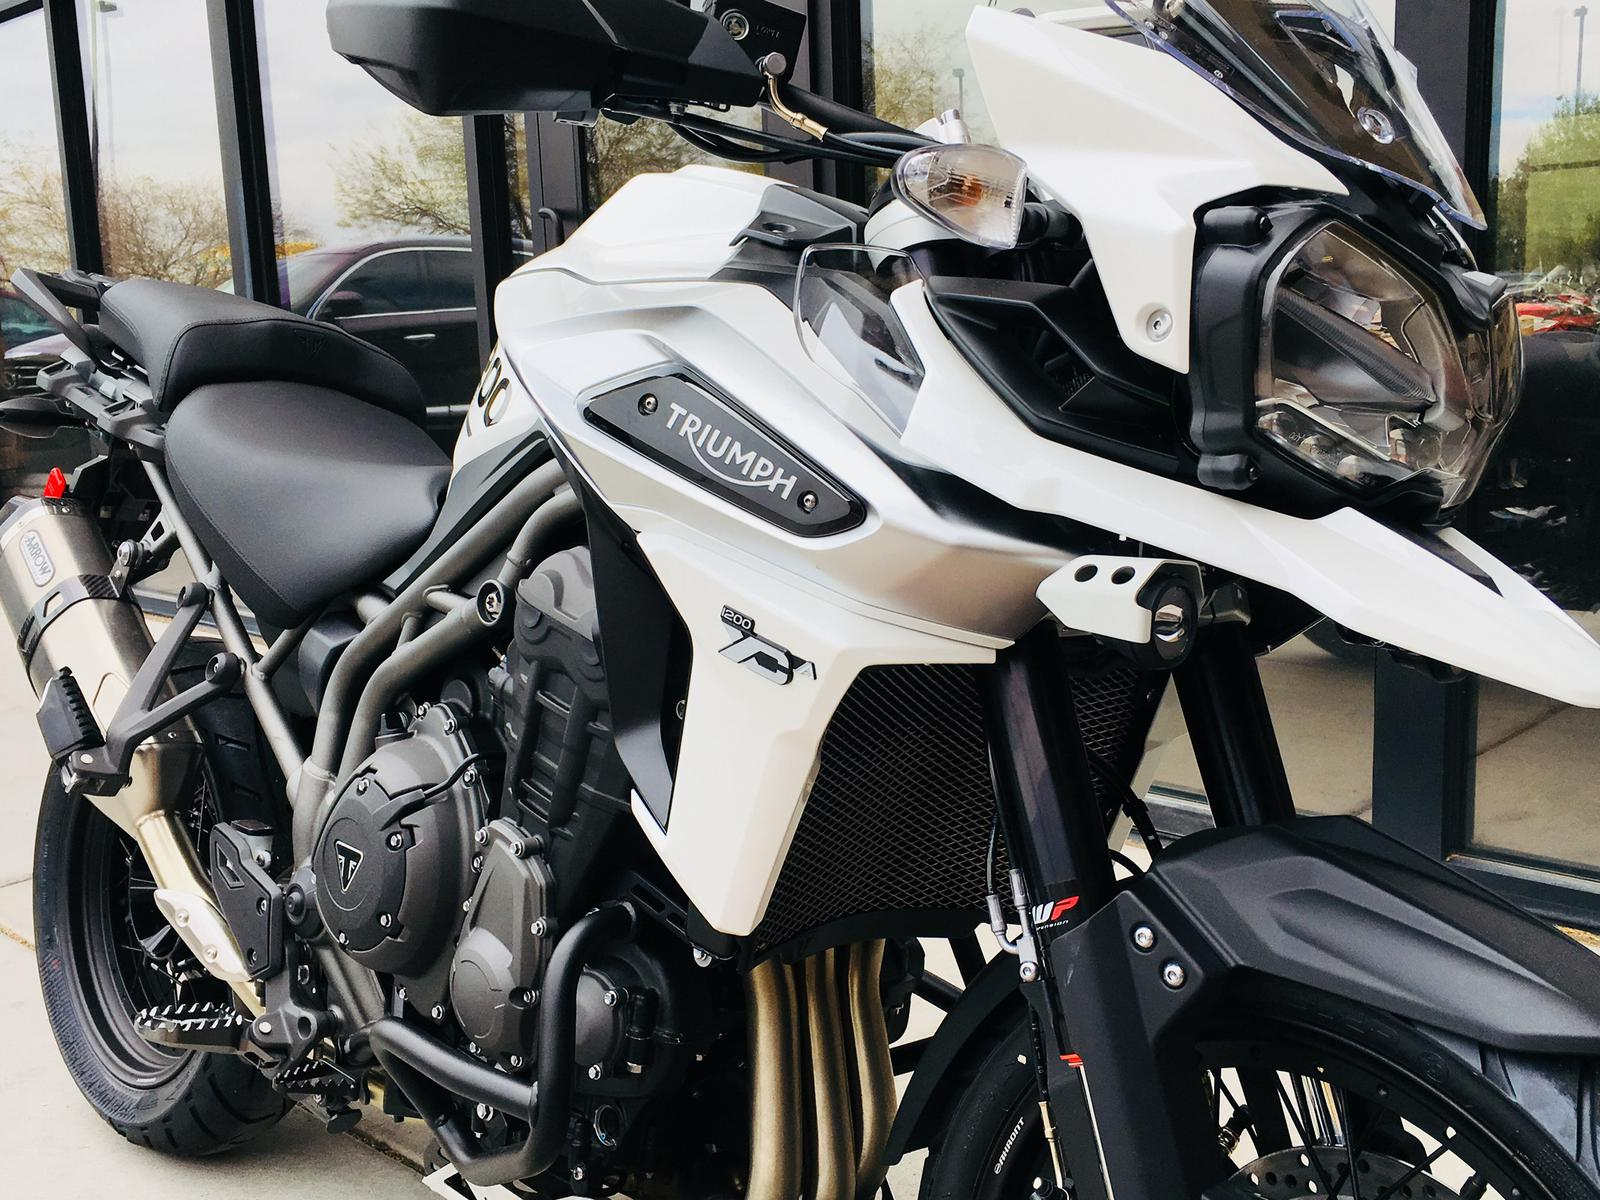 2018 Triumph Tiger 1200 Xca For Sale In Las Vegas Nv Freedom Euro